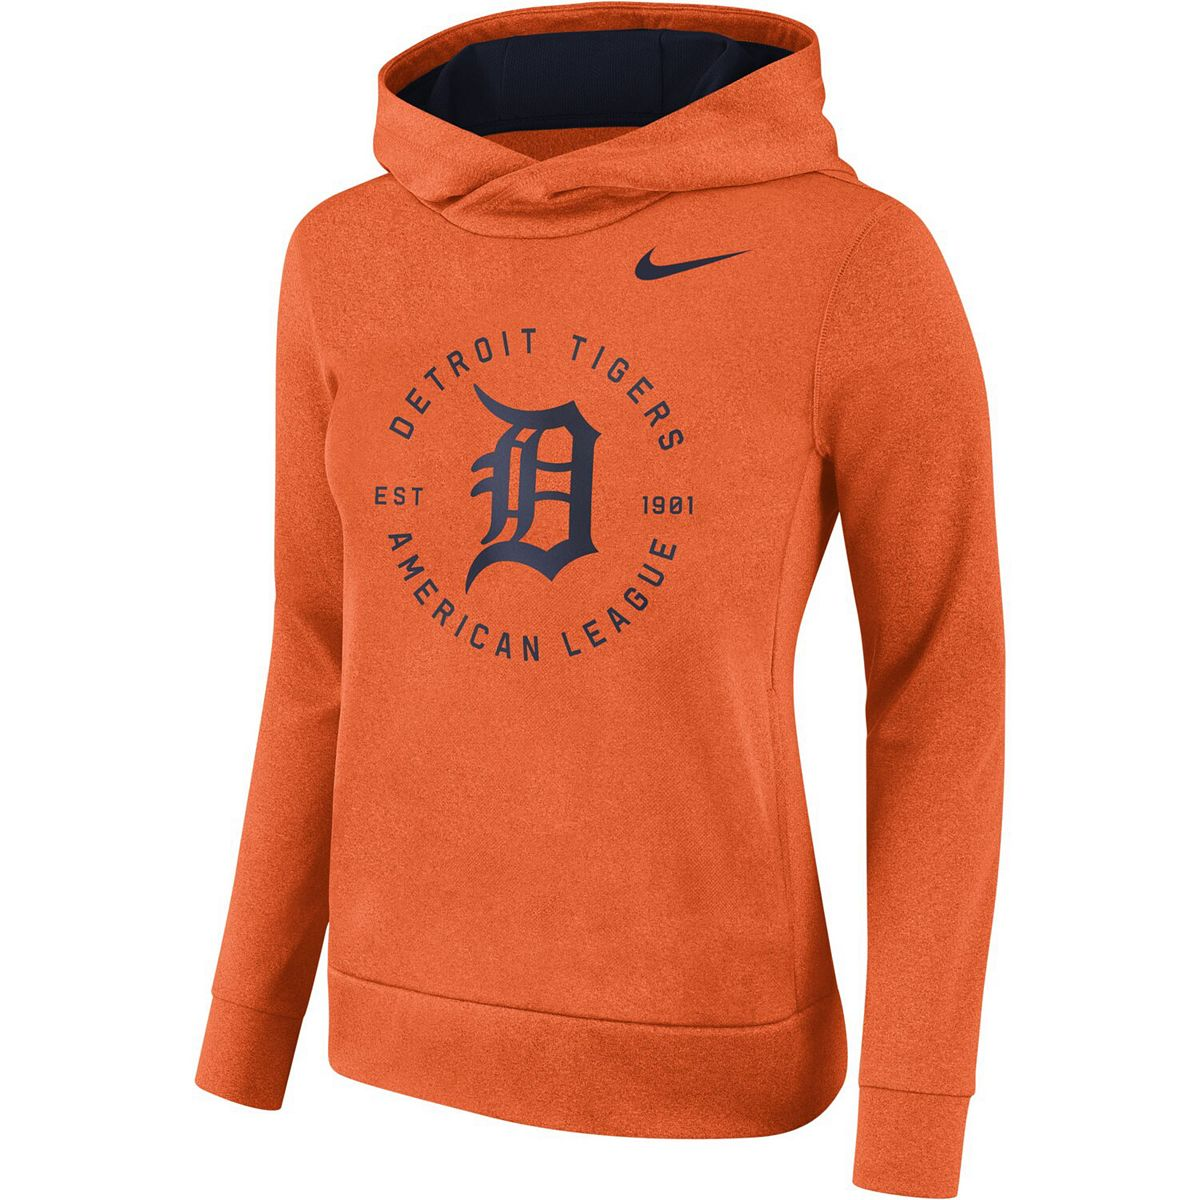 Women's Nike Orange Detroit Tigers Therma Pullover Hoodie Jgy7d